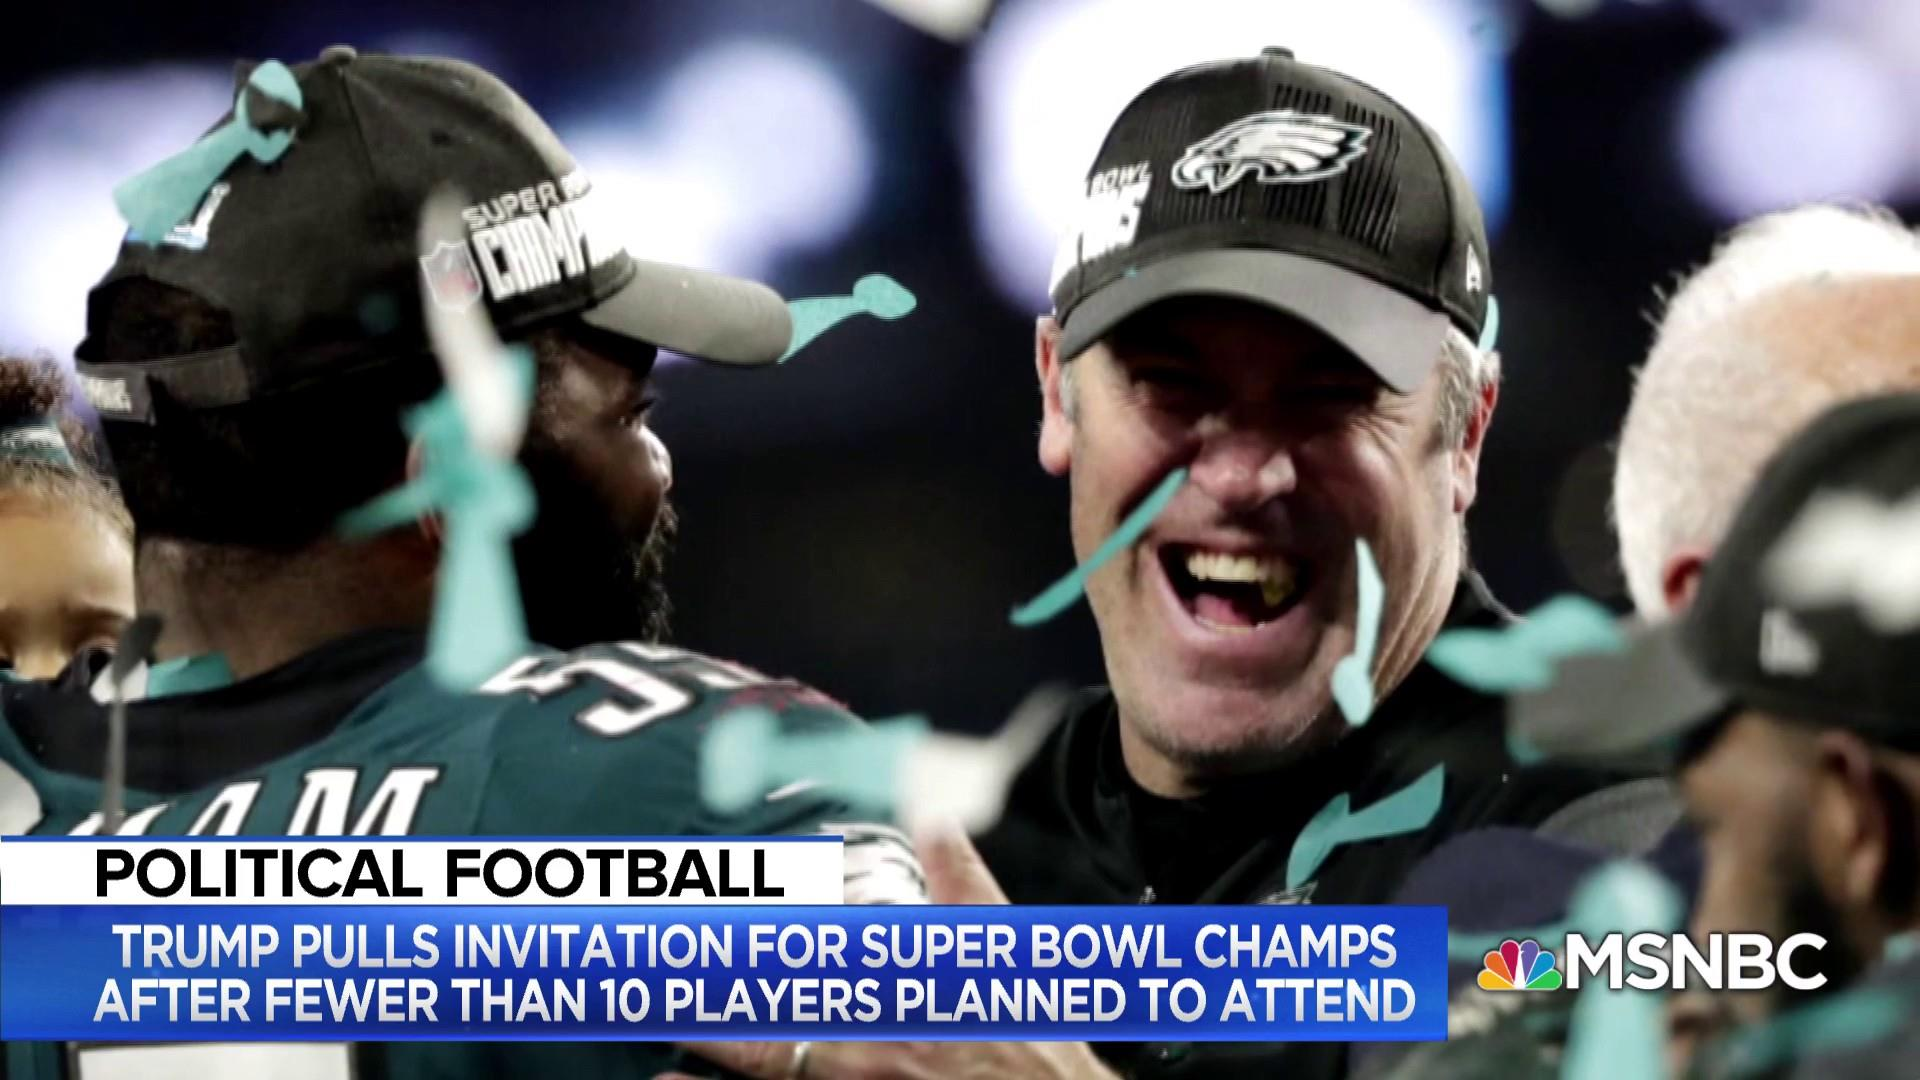 Why did Trump cancel Eagles visit to the White House?